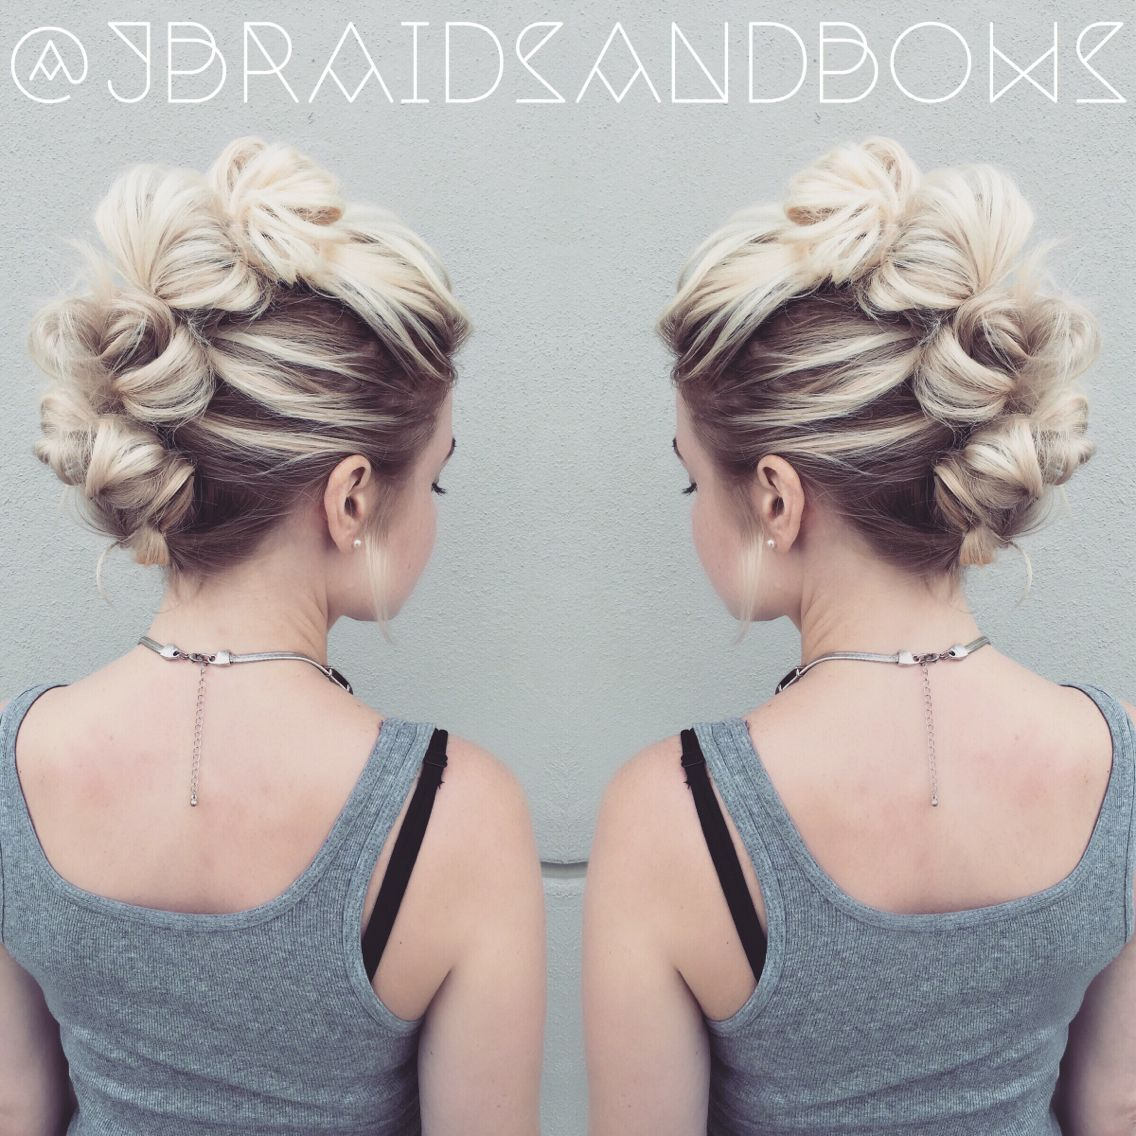 Jbraidsandbows hairstyles pinterest hair style updos and makeup